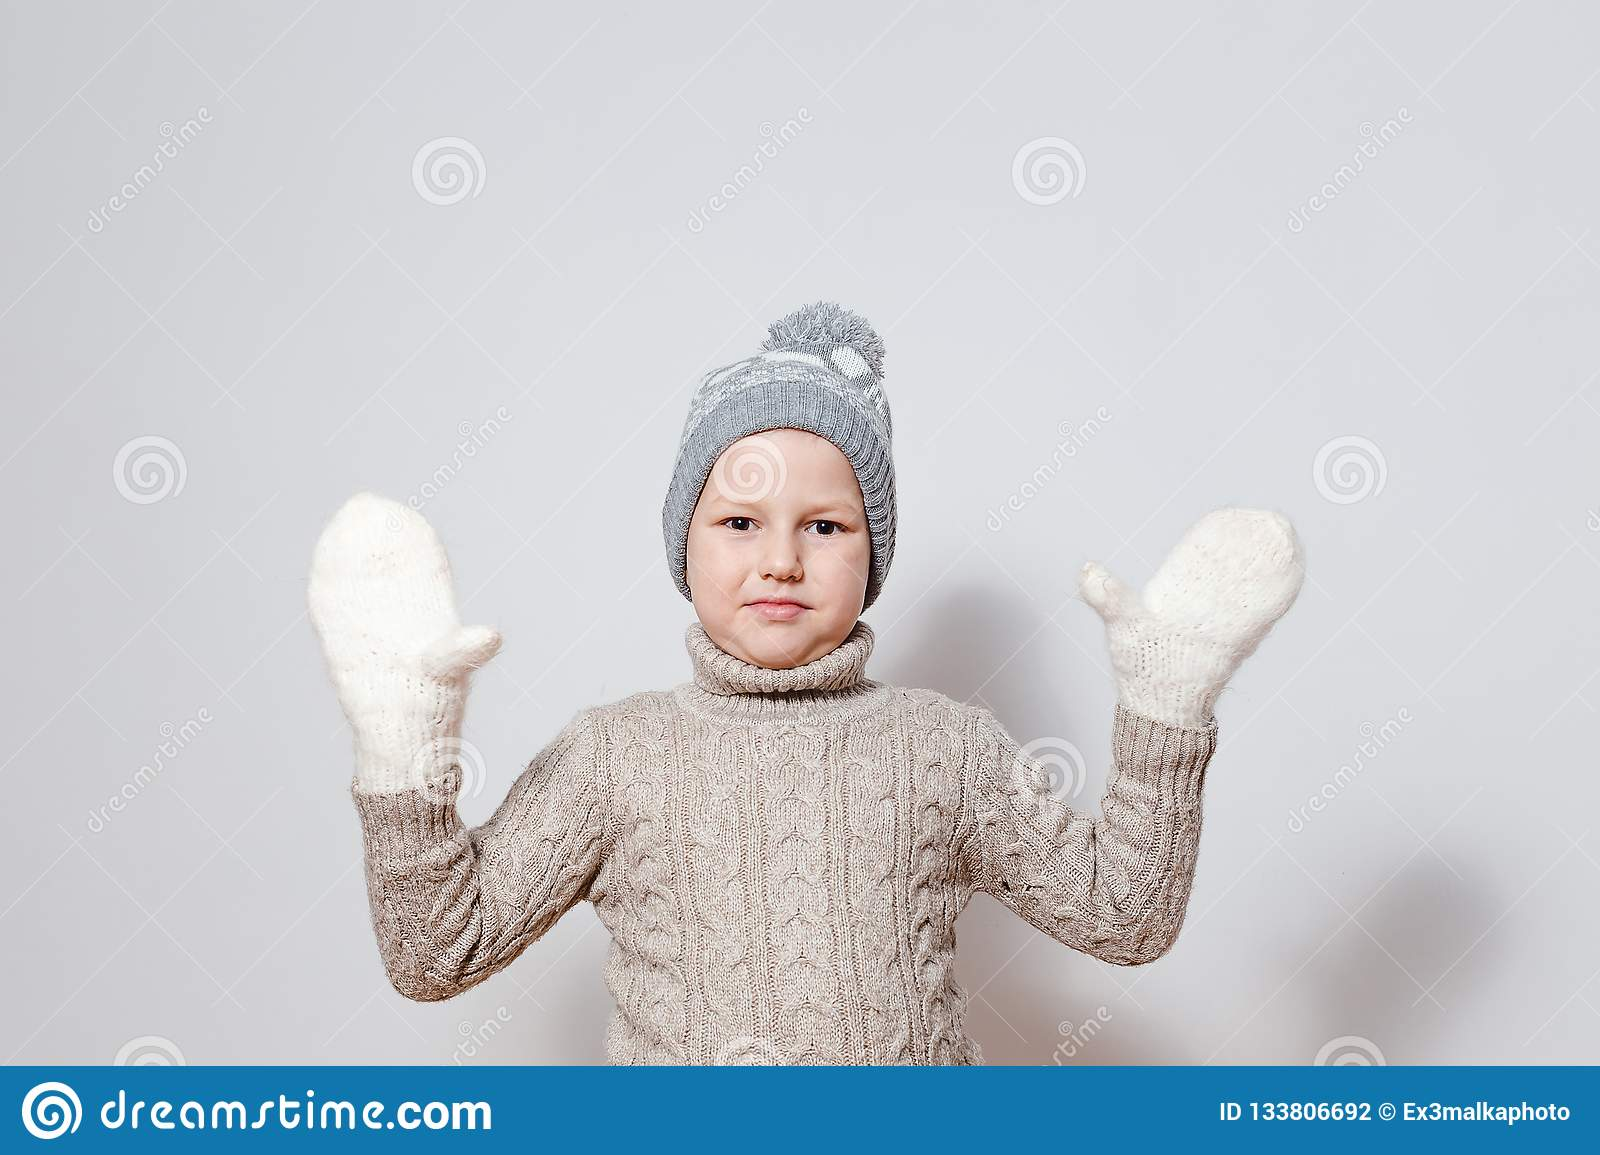 Seven-year-old boy in white knitted mittens and sweater spreads his hands to the sides